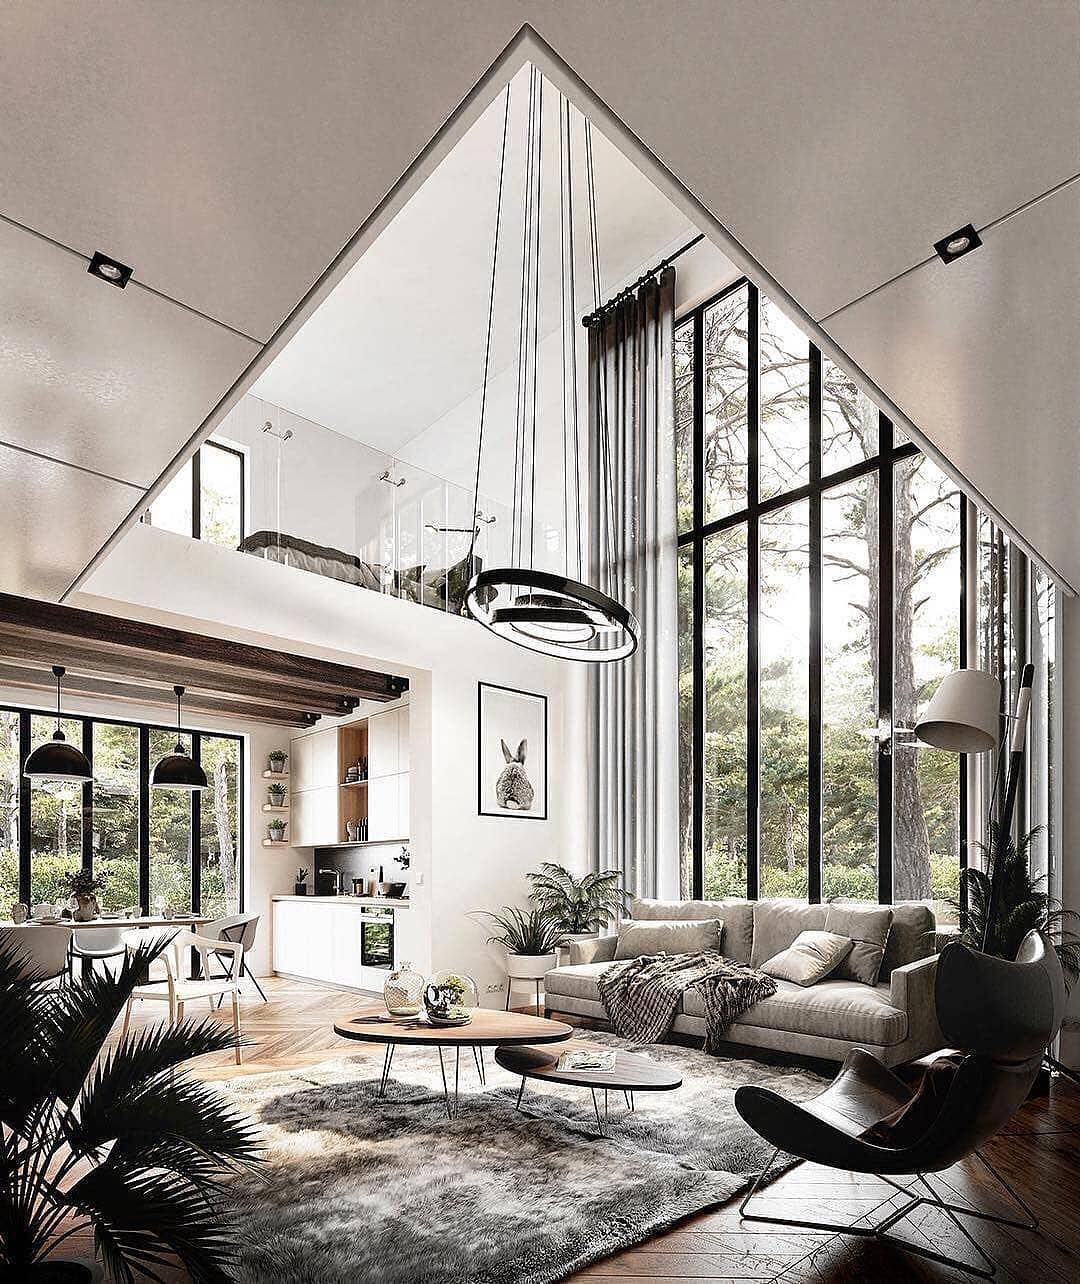 Luxury Mansions Cars On Instagram Interior Goals Follow Sashii100 For More Amazi In 2020 Contemporary Decor Living Room Modern Houses Interior House Interior